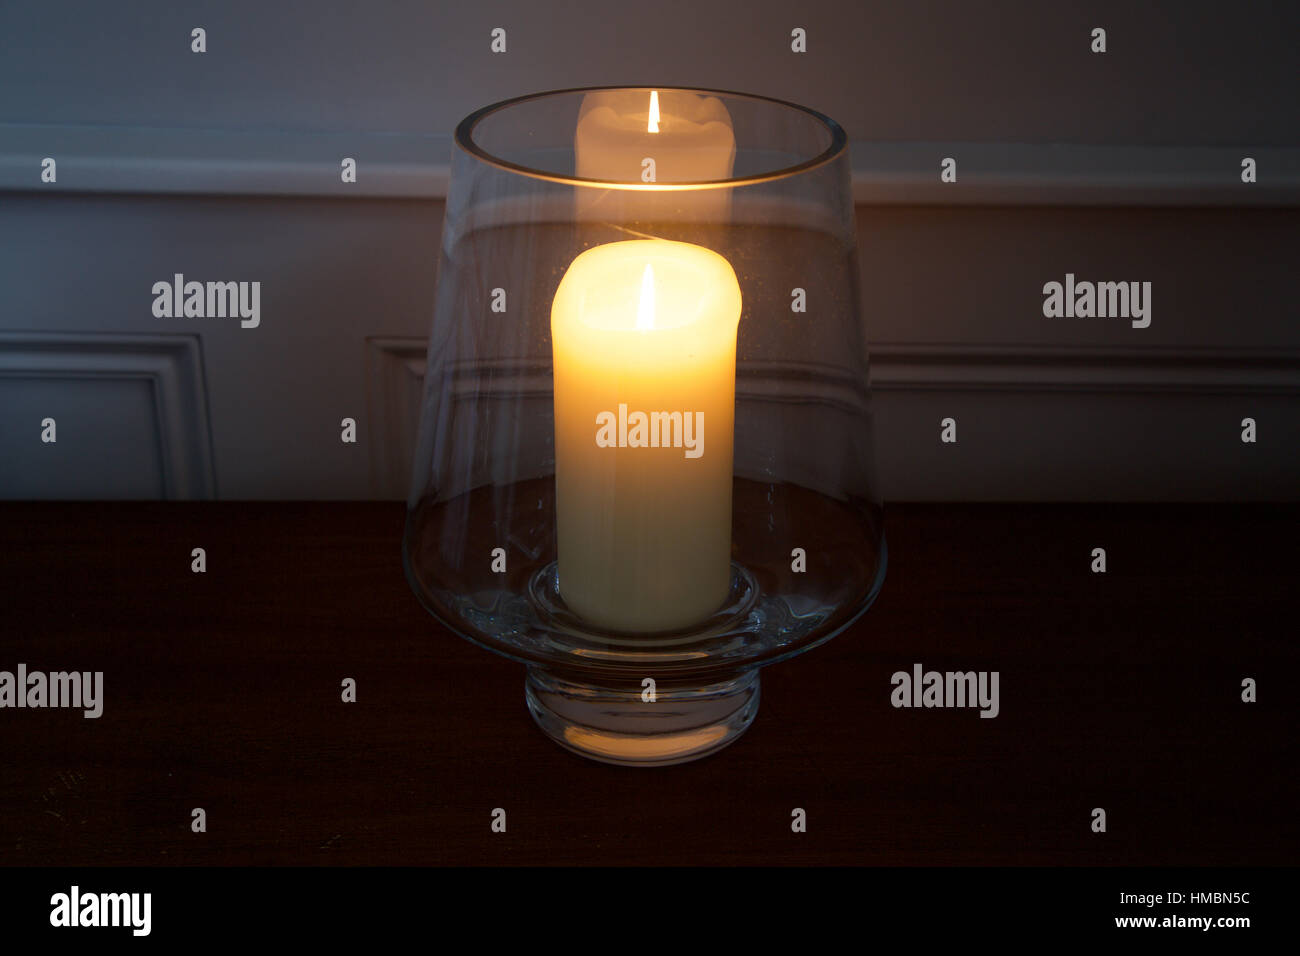 Traditional candle burning in glass holder on table in hallway with glowing flame cosy and creating Danish hygge - Stock Image